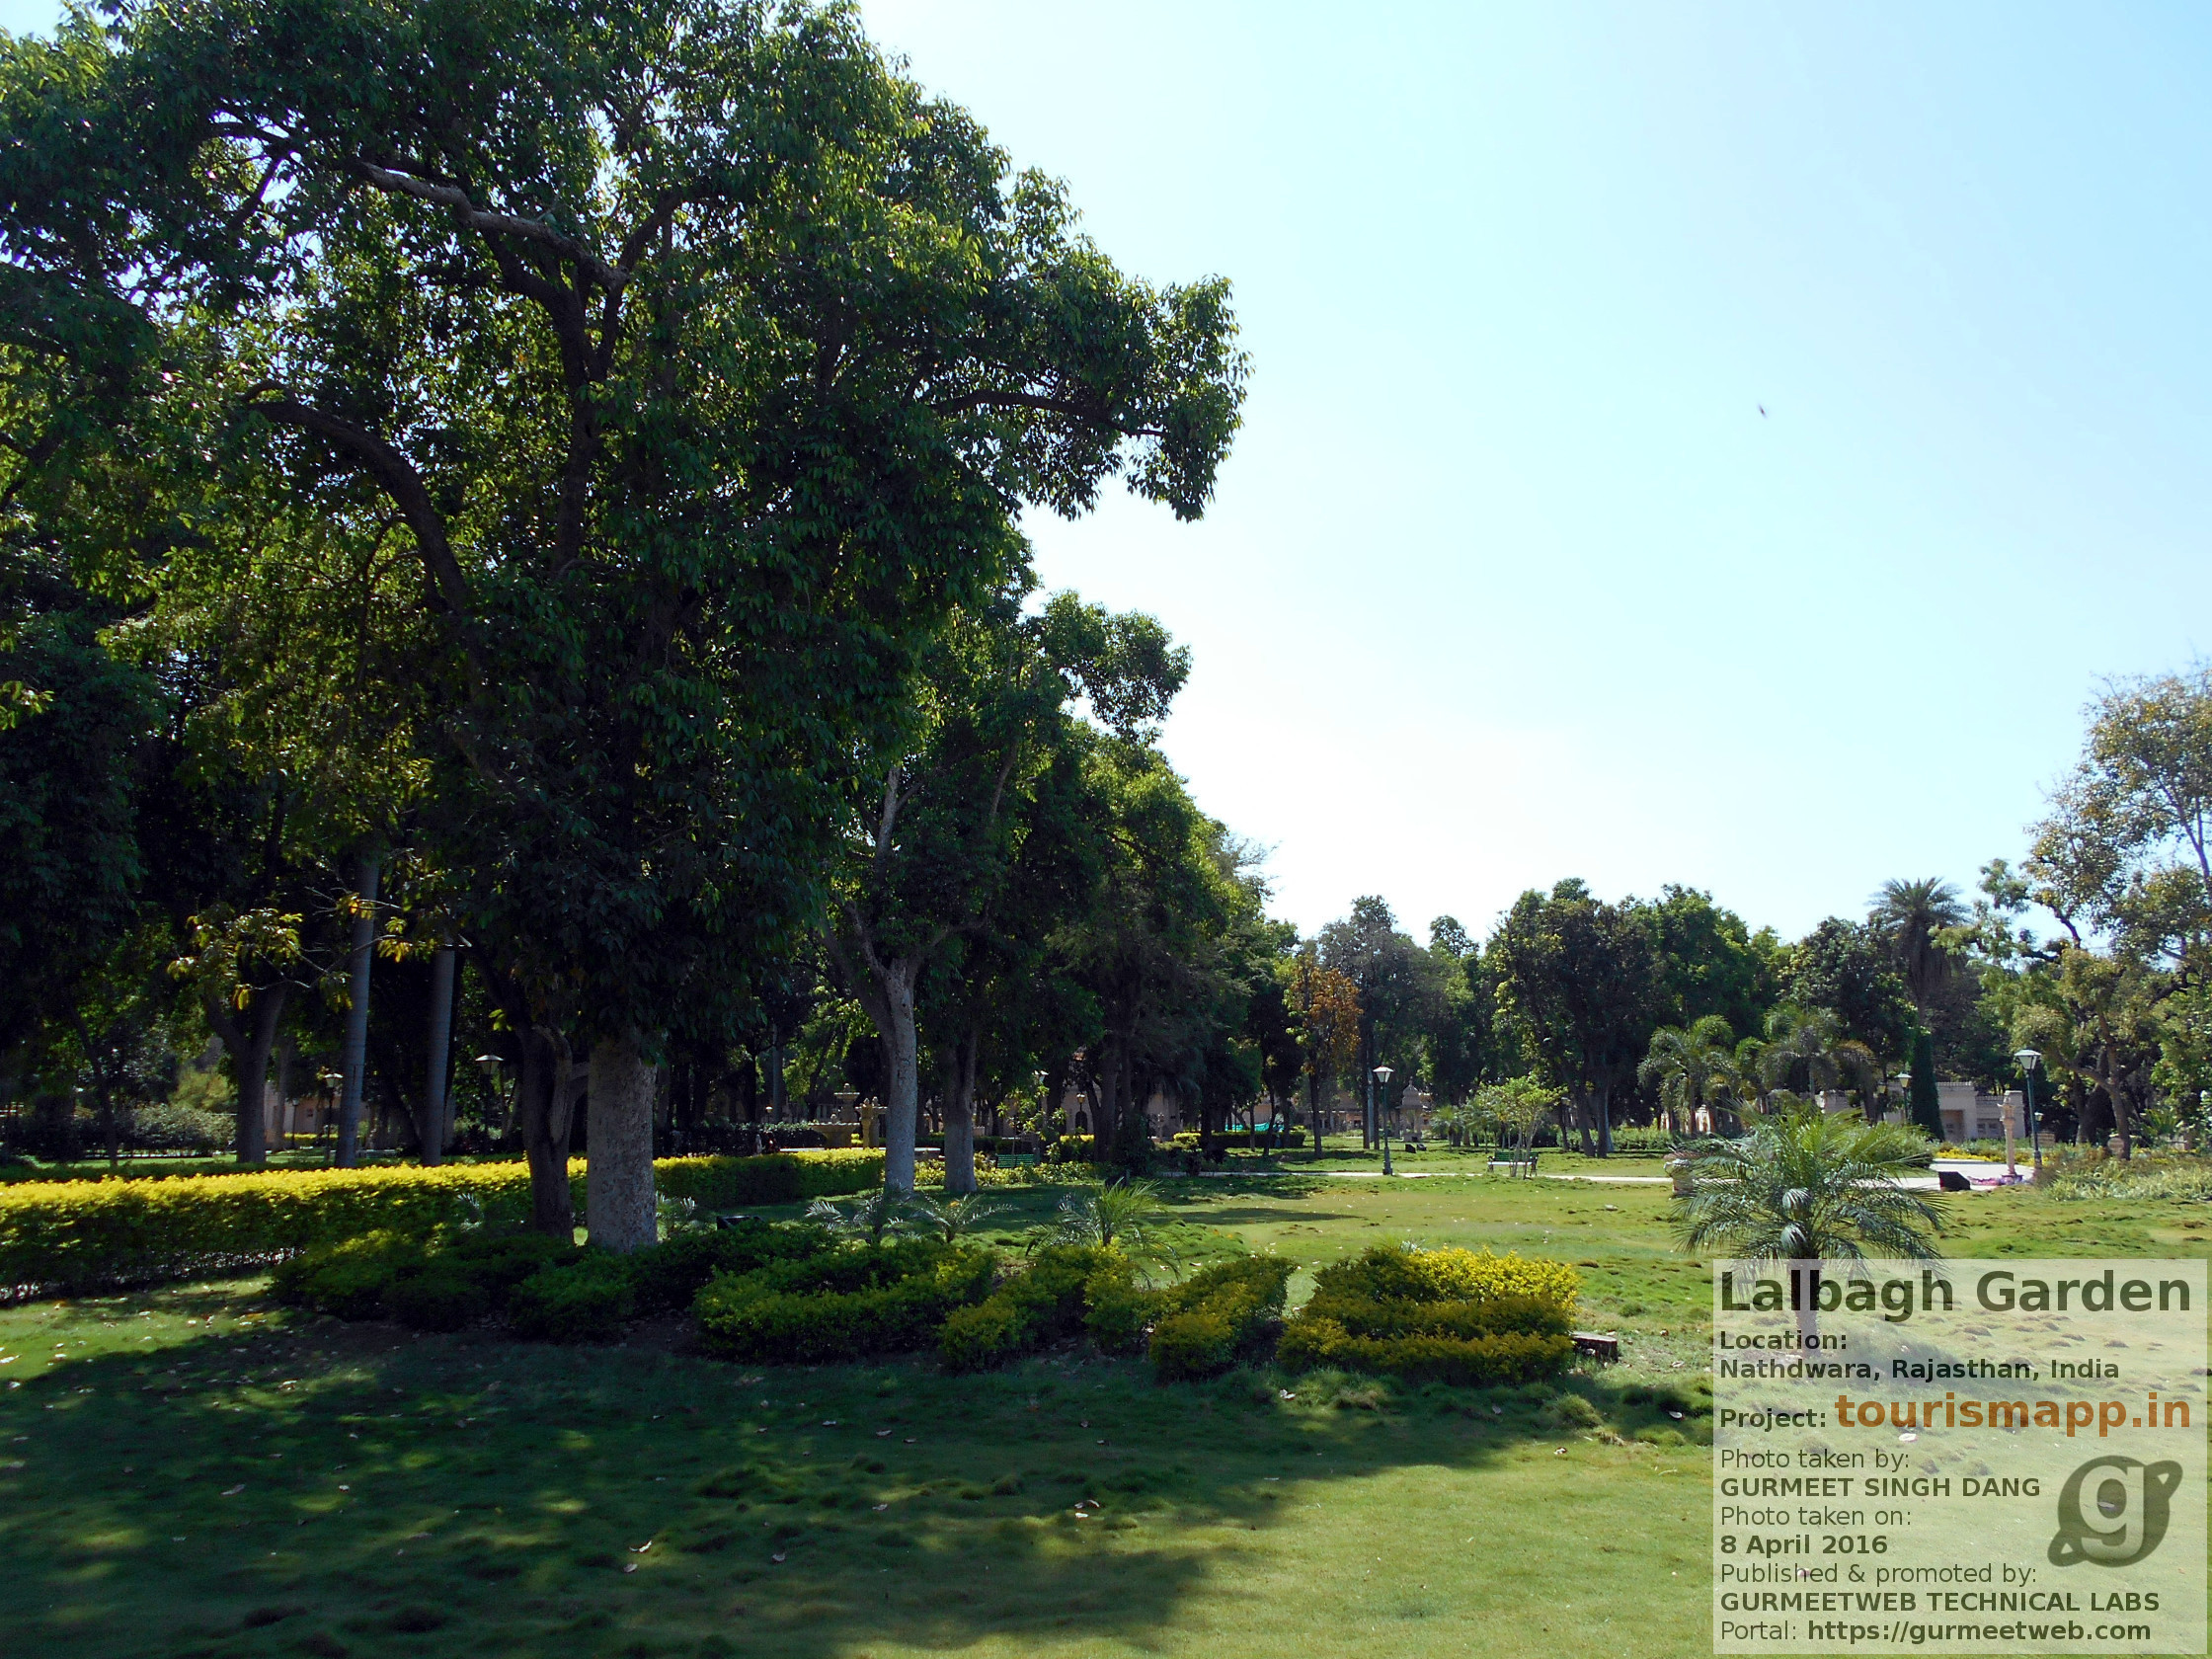 Lalbagh Garden in Nathdwara, Rajasthan, India